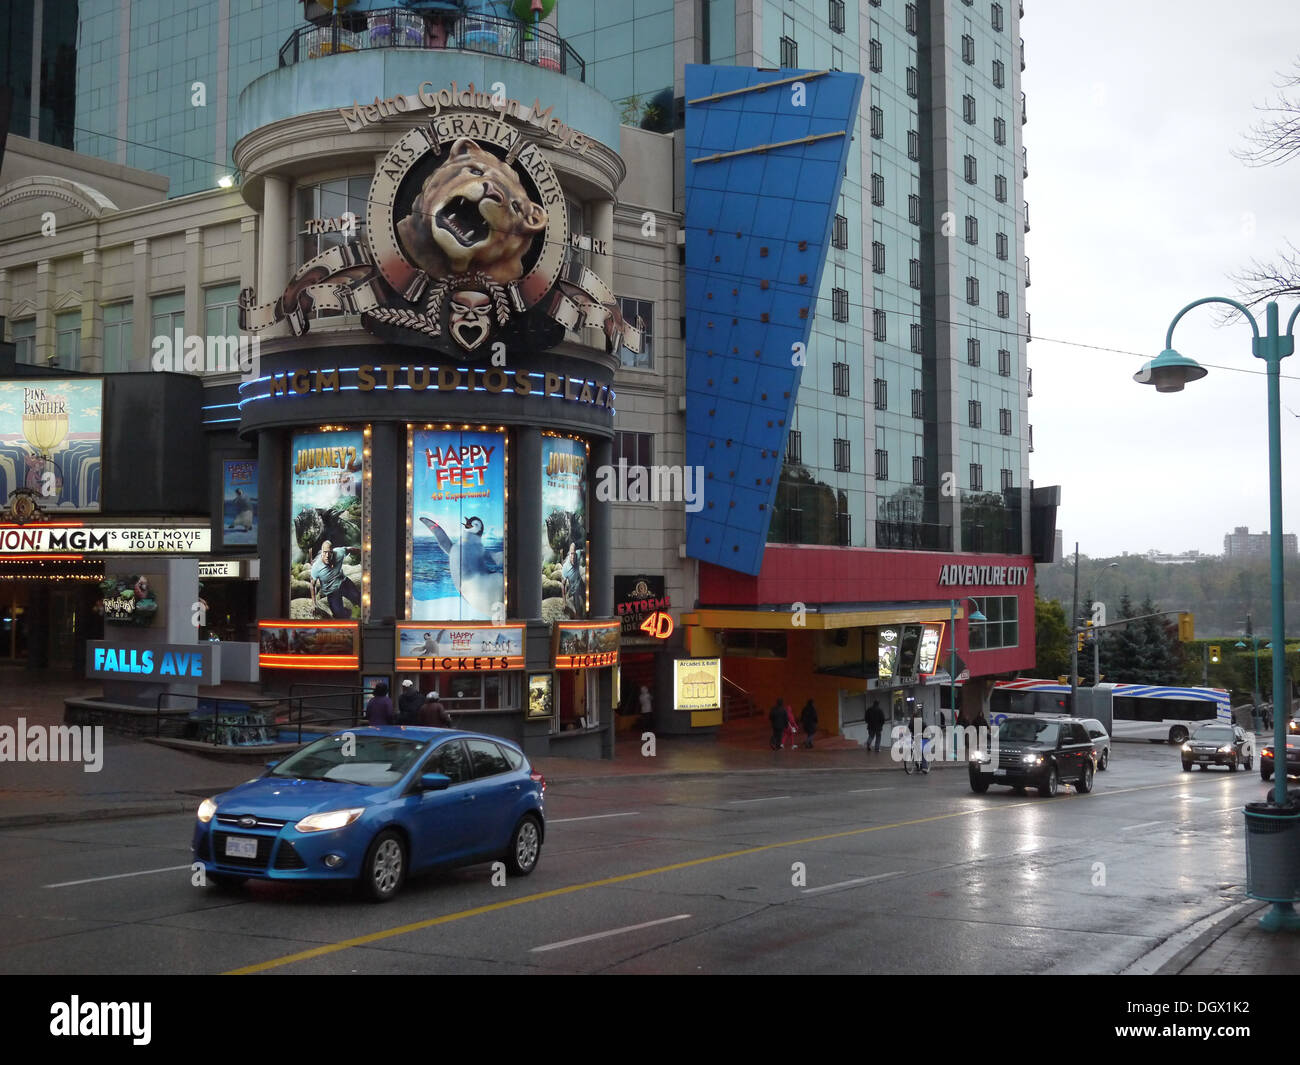 The MGM Studio Plaza Niagara Falls is a one of a kind retail store and attraction outlet. - Stock Image